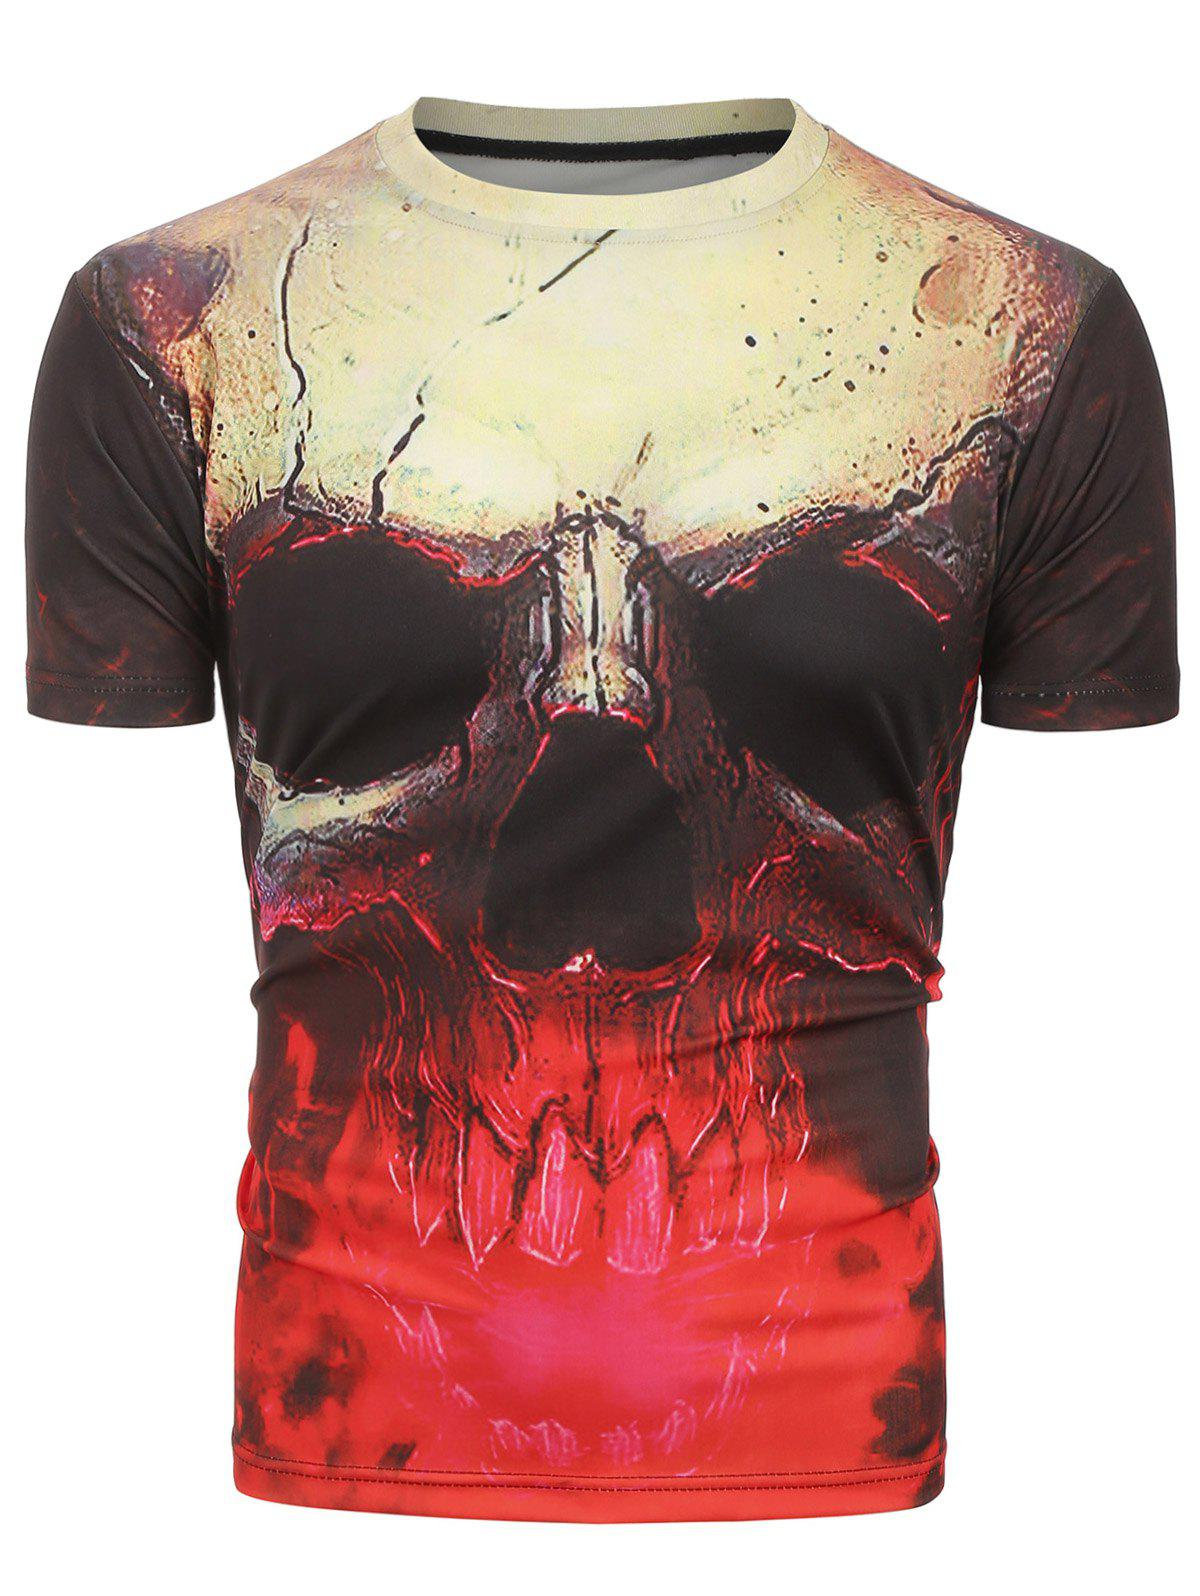 Chic 3D Skull Print Short Sleeves Tee